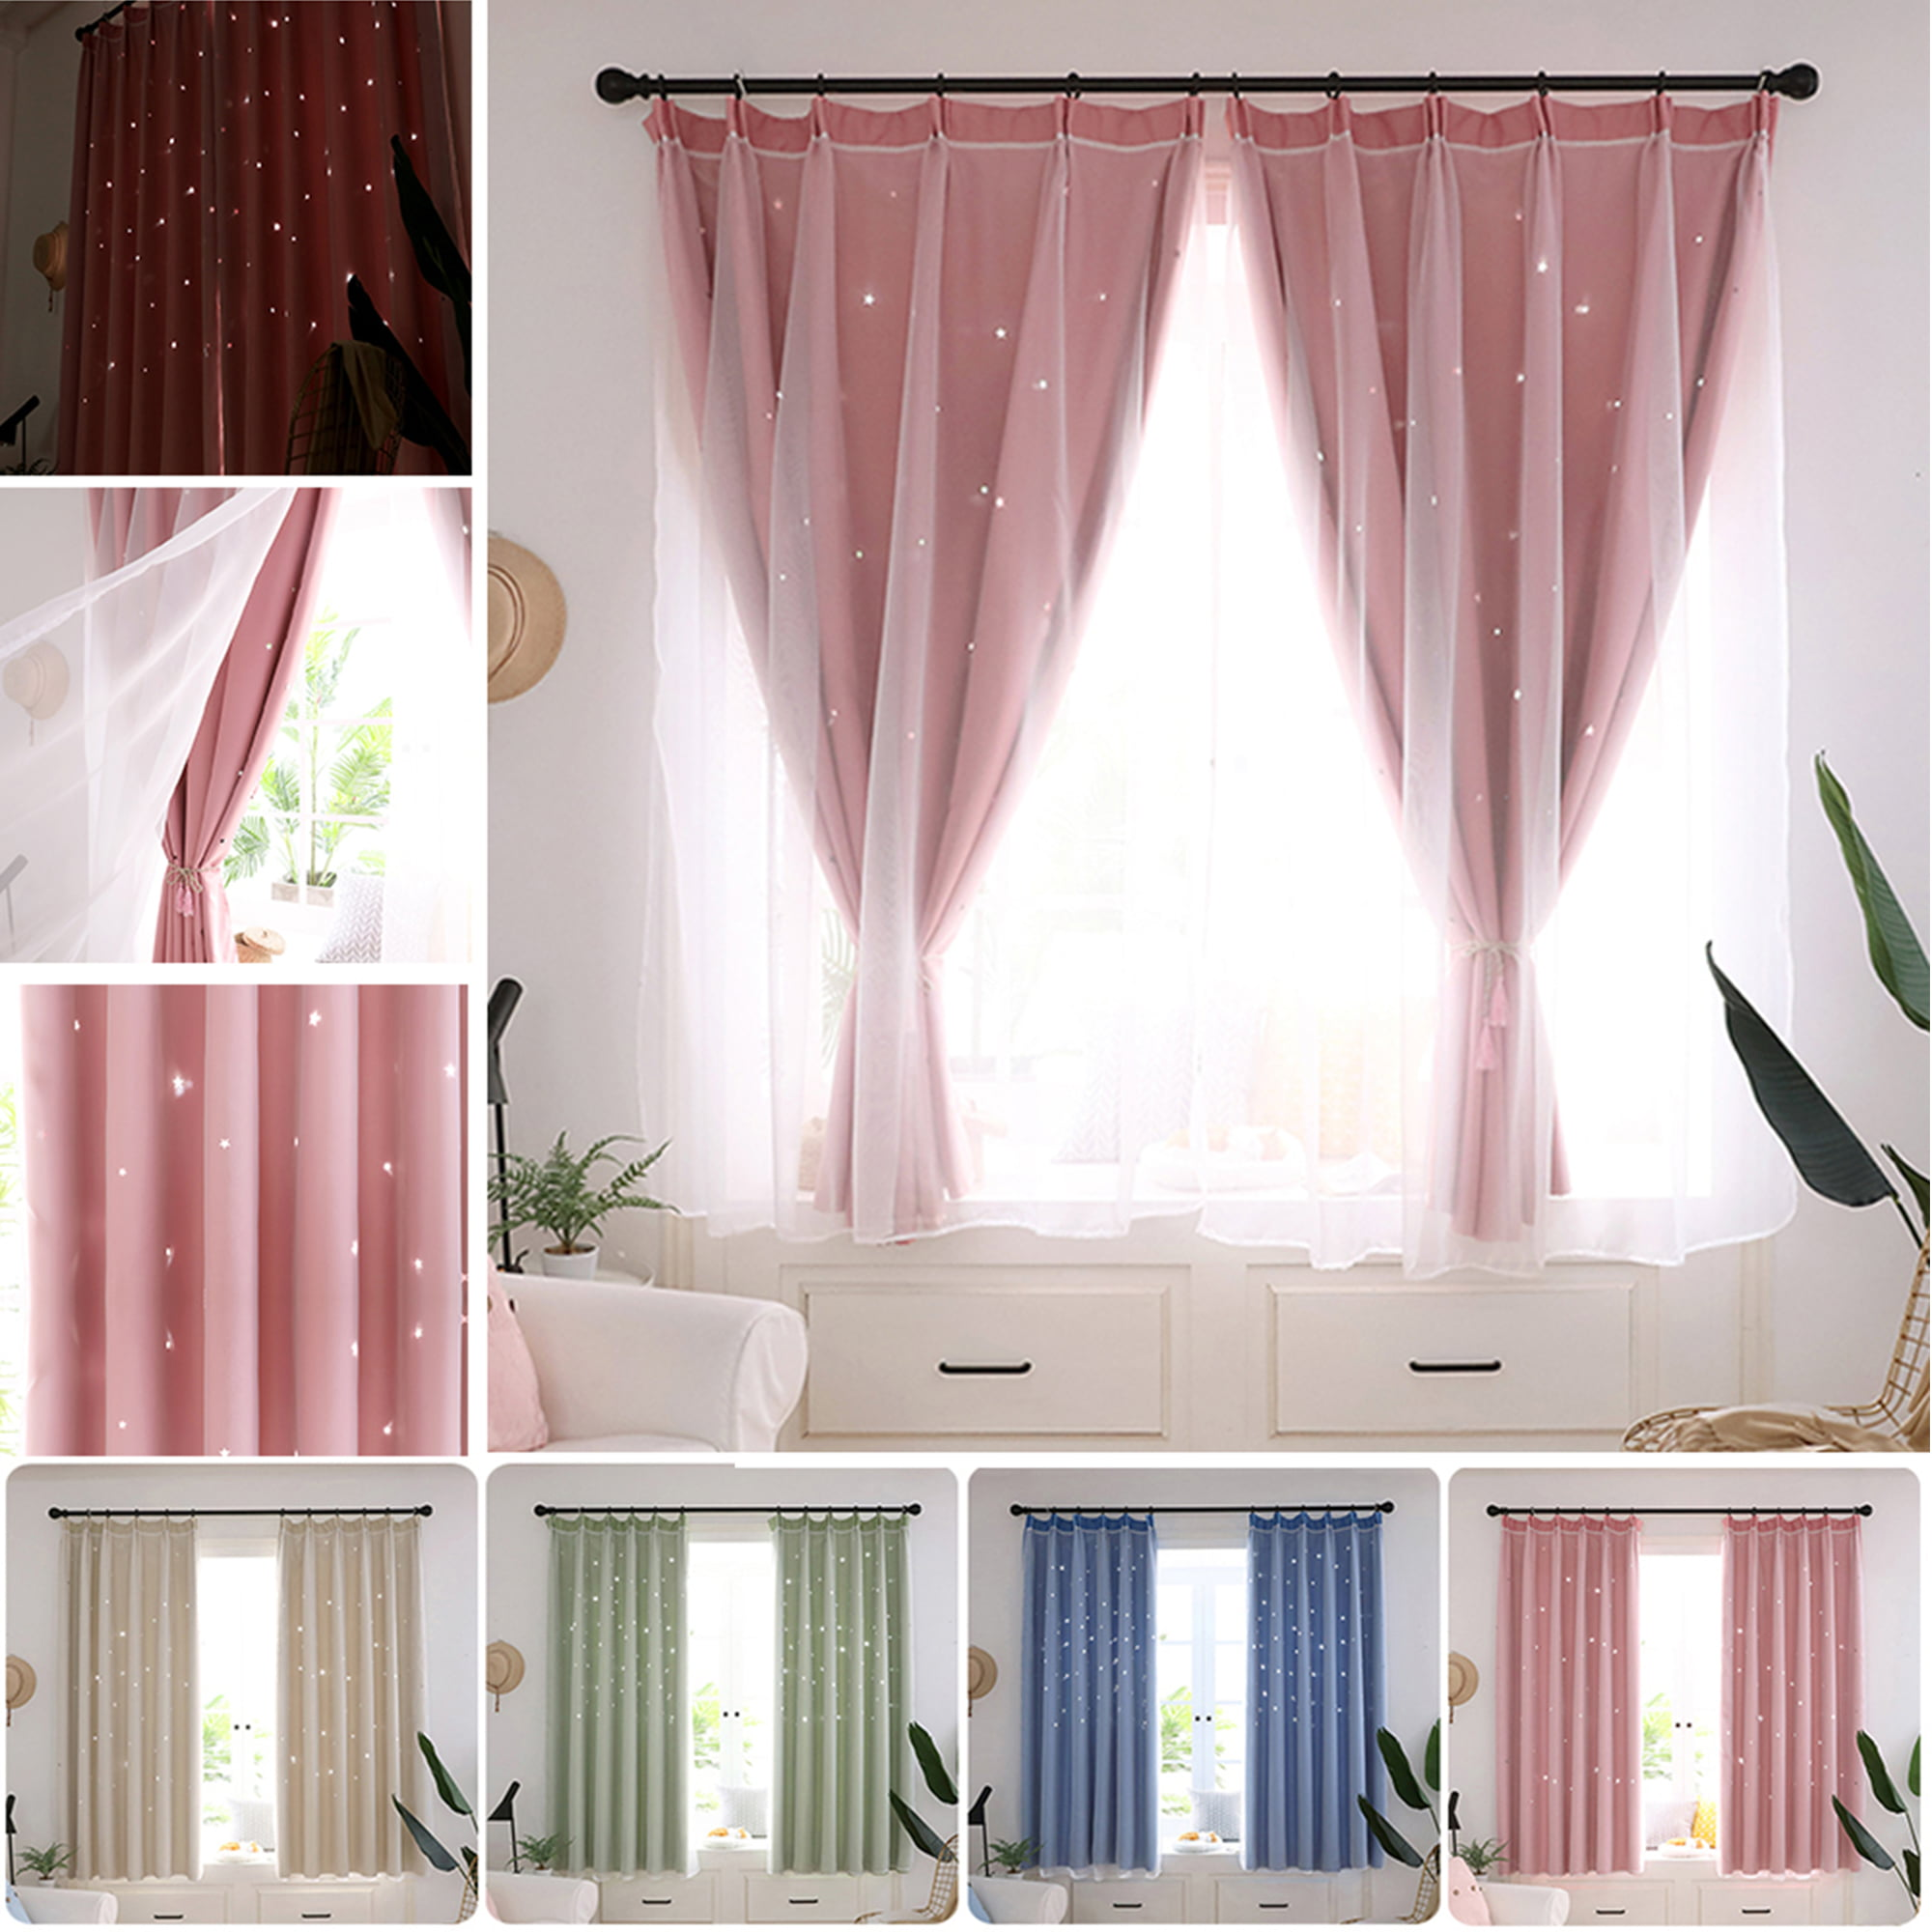 2 Layer Star Tulle+Blackout Curtains Eyelet Fabric Room ...